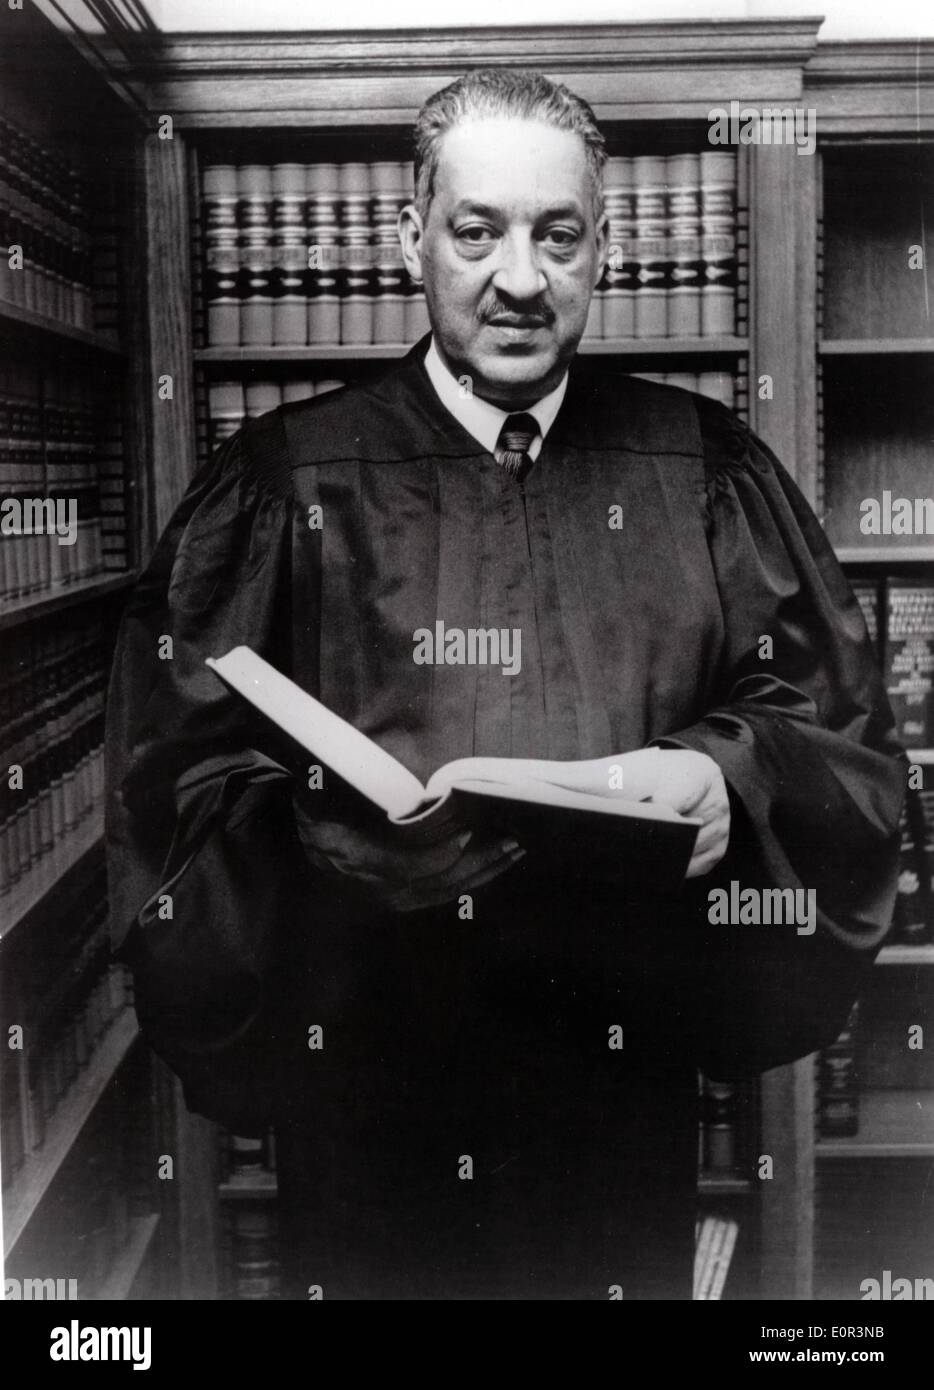 Jan. 01, 1958 - Washington , District of Columbia, U.S. - File Photo: circa 1958. Half a century after the historic ruling in Brown v. Board of Education that overturned segregated education, the US is marking 50 years of racial school integration. (File Photo: Date Unknown) Shown here as a Circuit Court Judge, THURGOOD MARSHALL, was the lead attorney in the Brown v. Board of Education case. - Stock Image